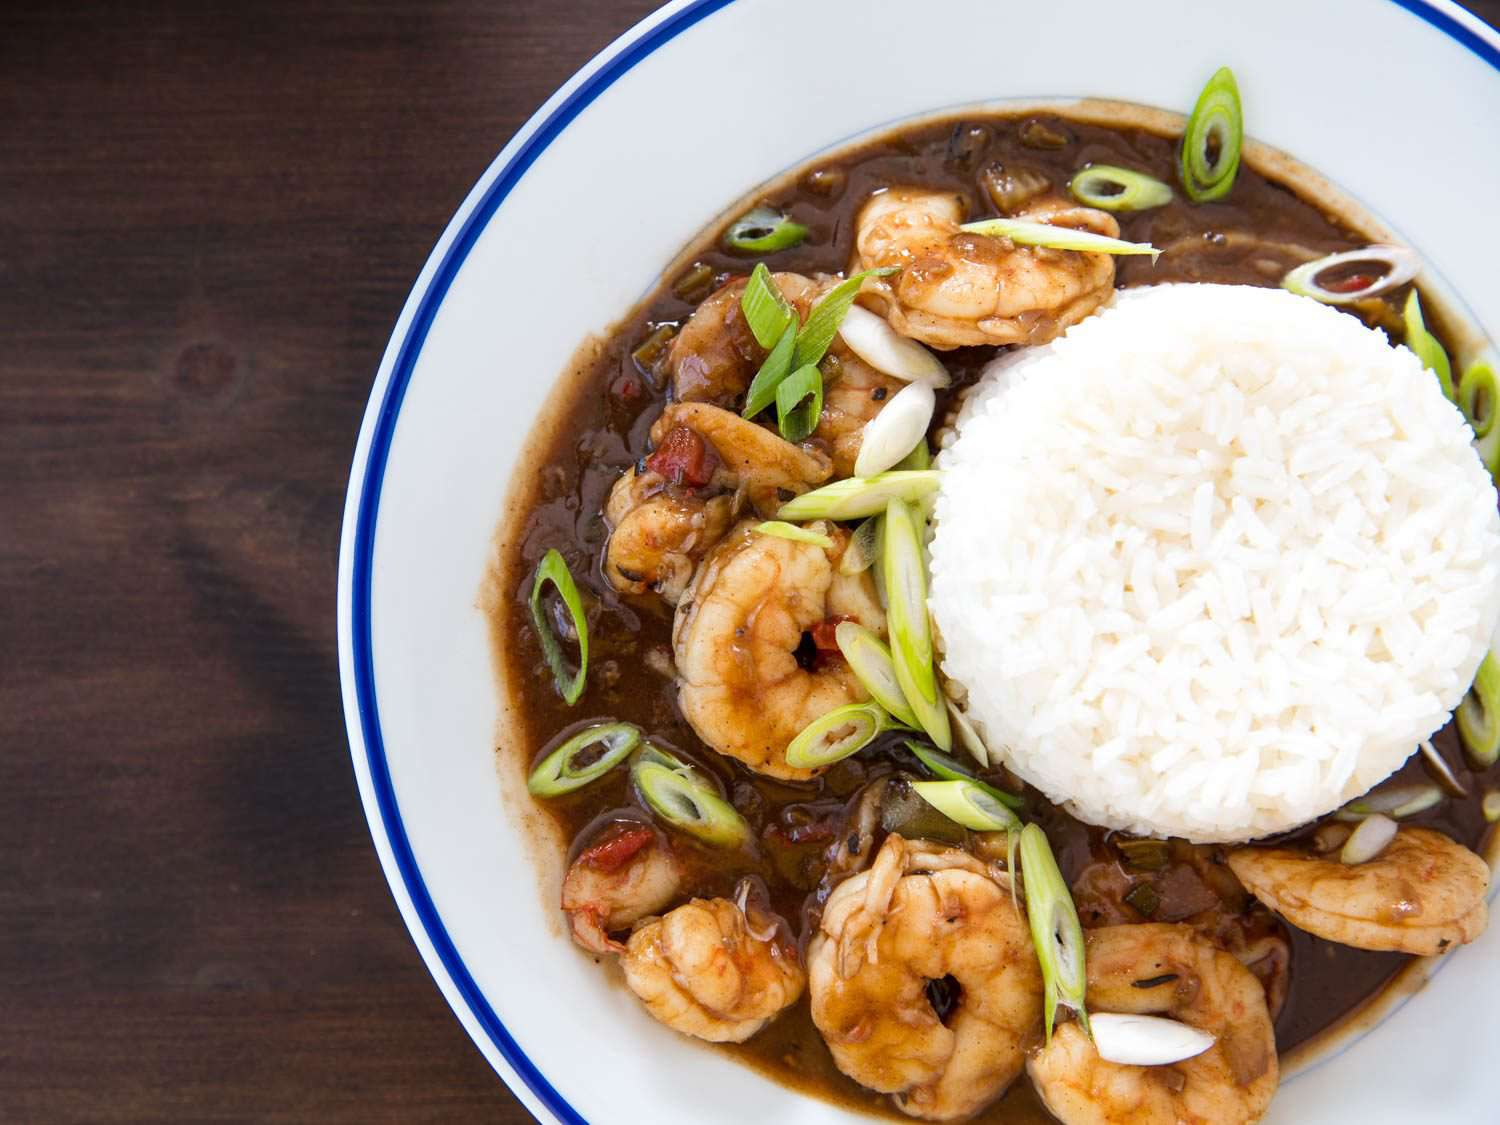 Beauty shot of shrimp etouffee, made with a dark brown roux, on the plate with rice